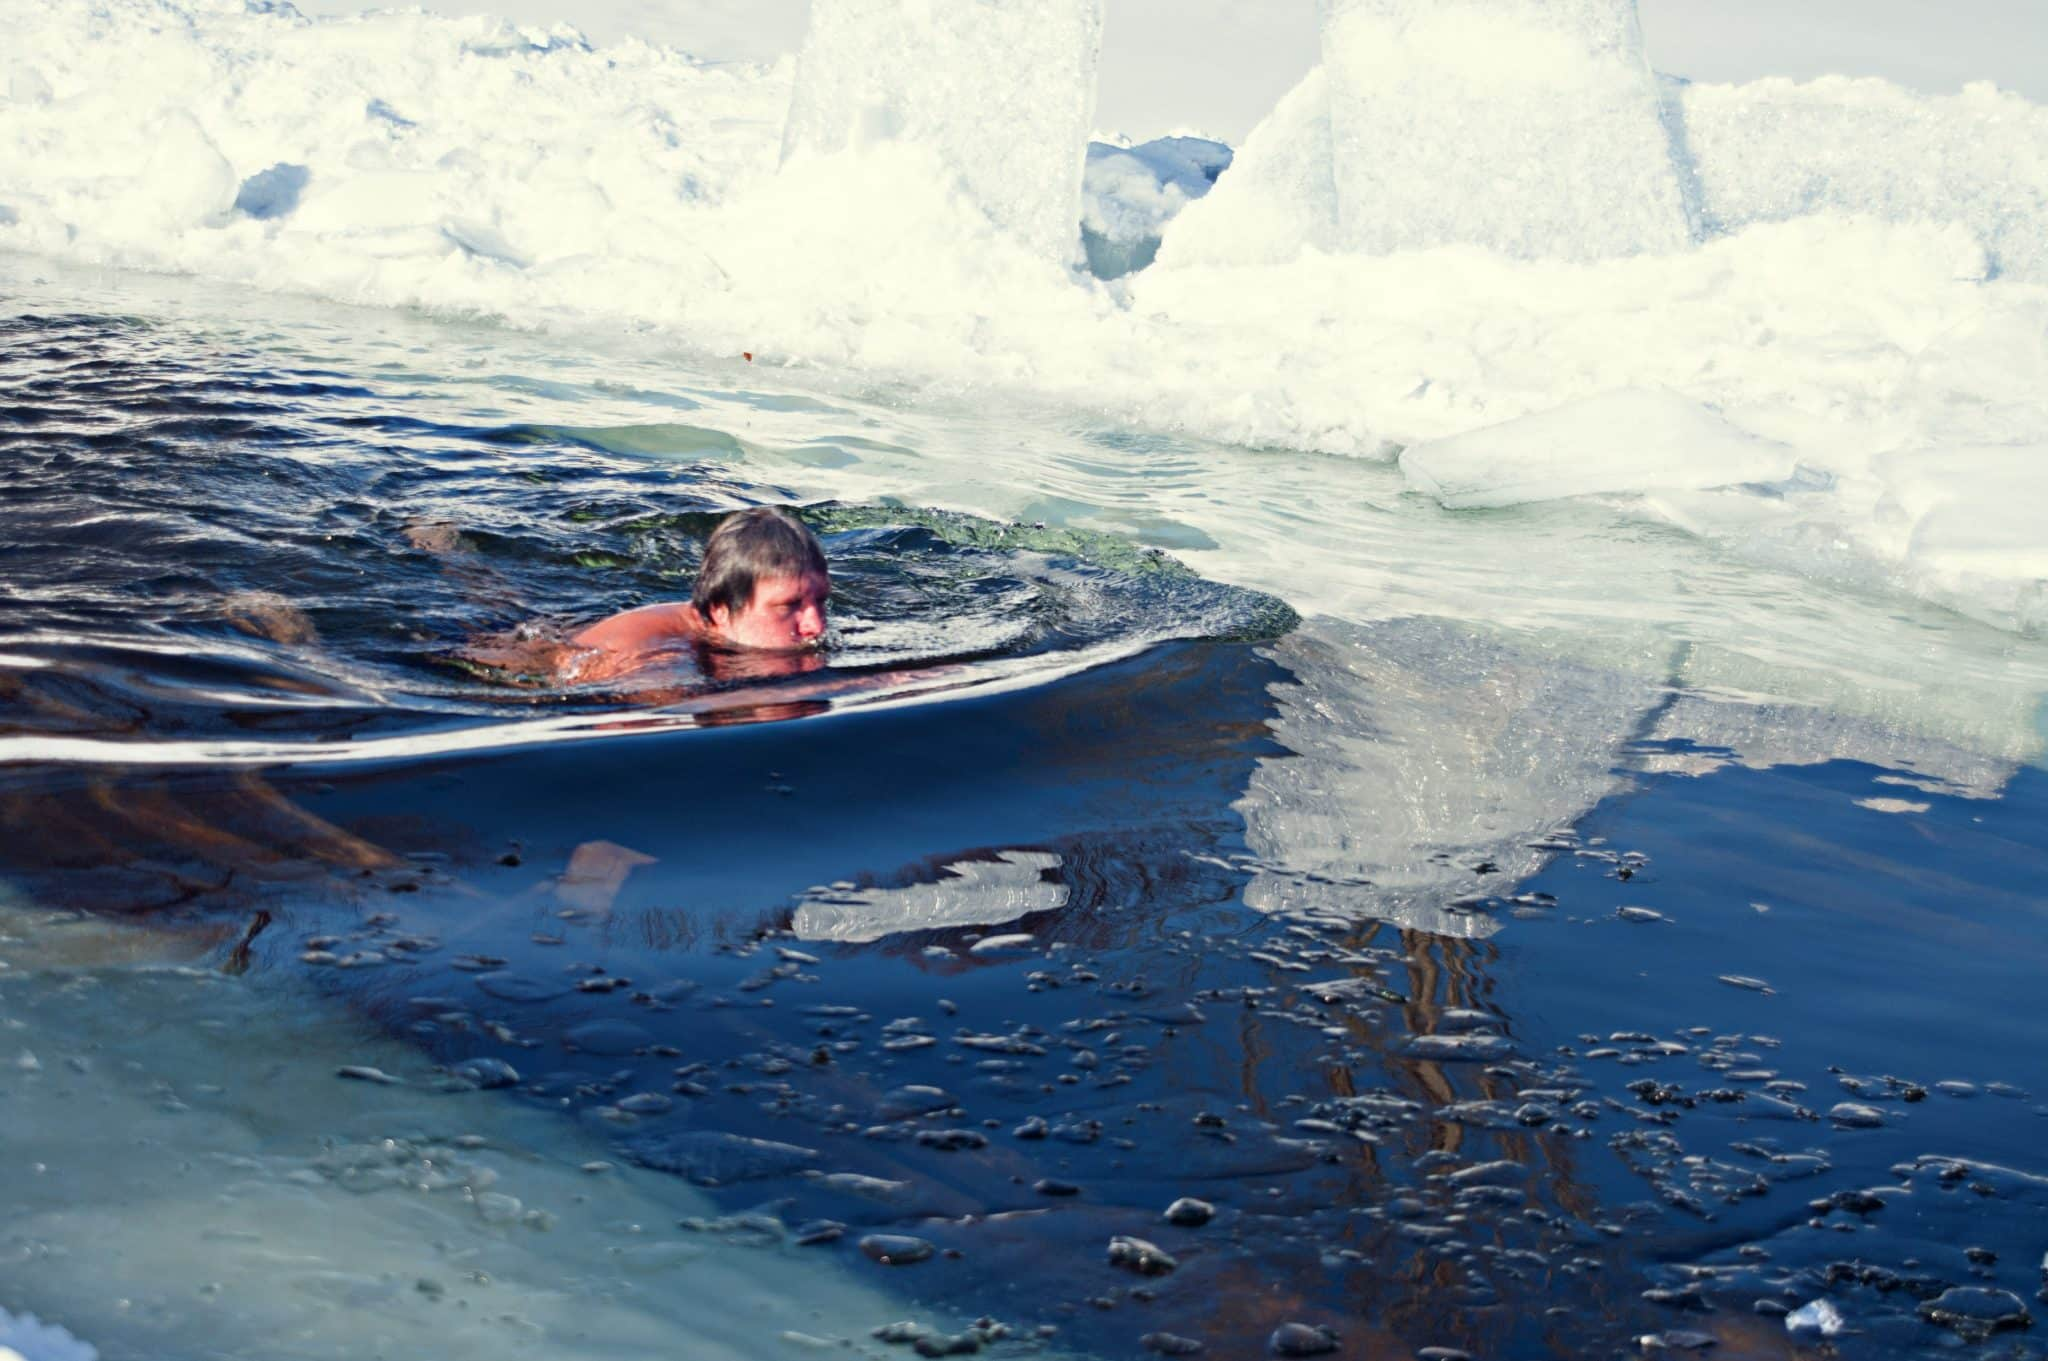 winter ice-hole swimming during trans-siberian railway tour